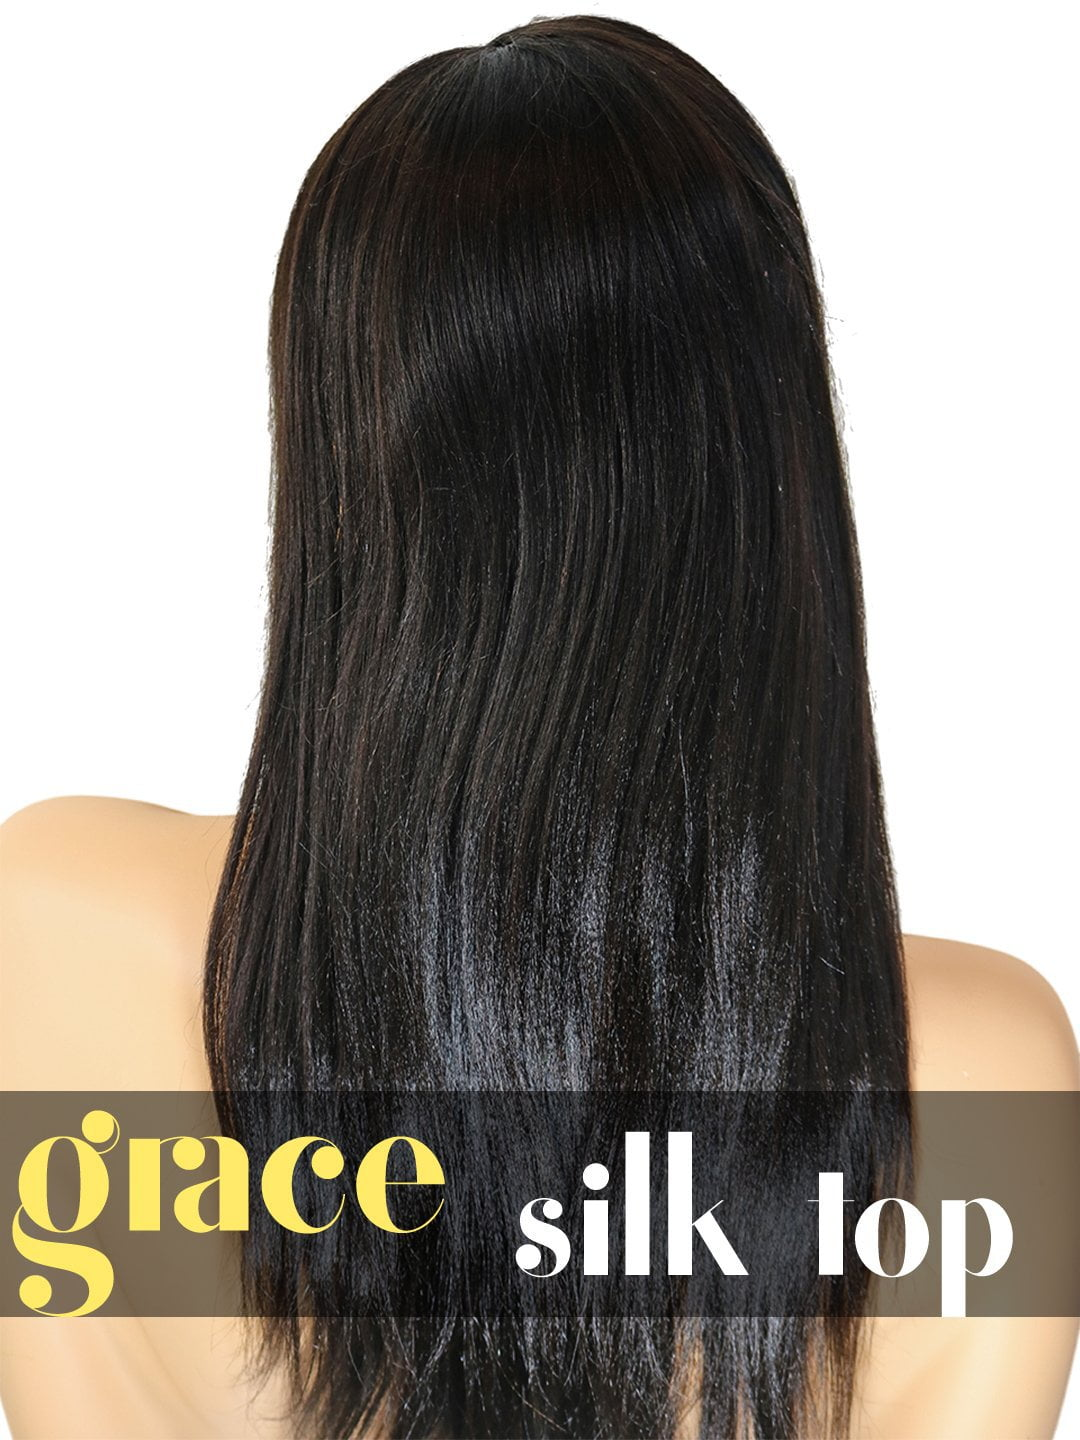 SILK TOP LACE WIG: Yaki Straight